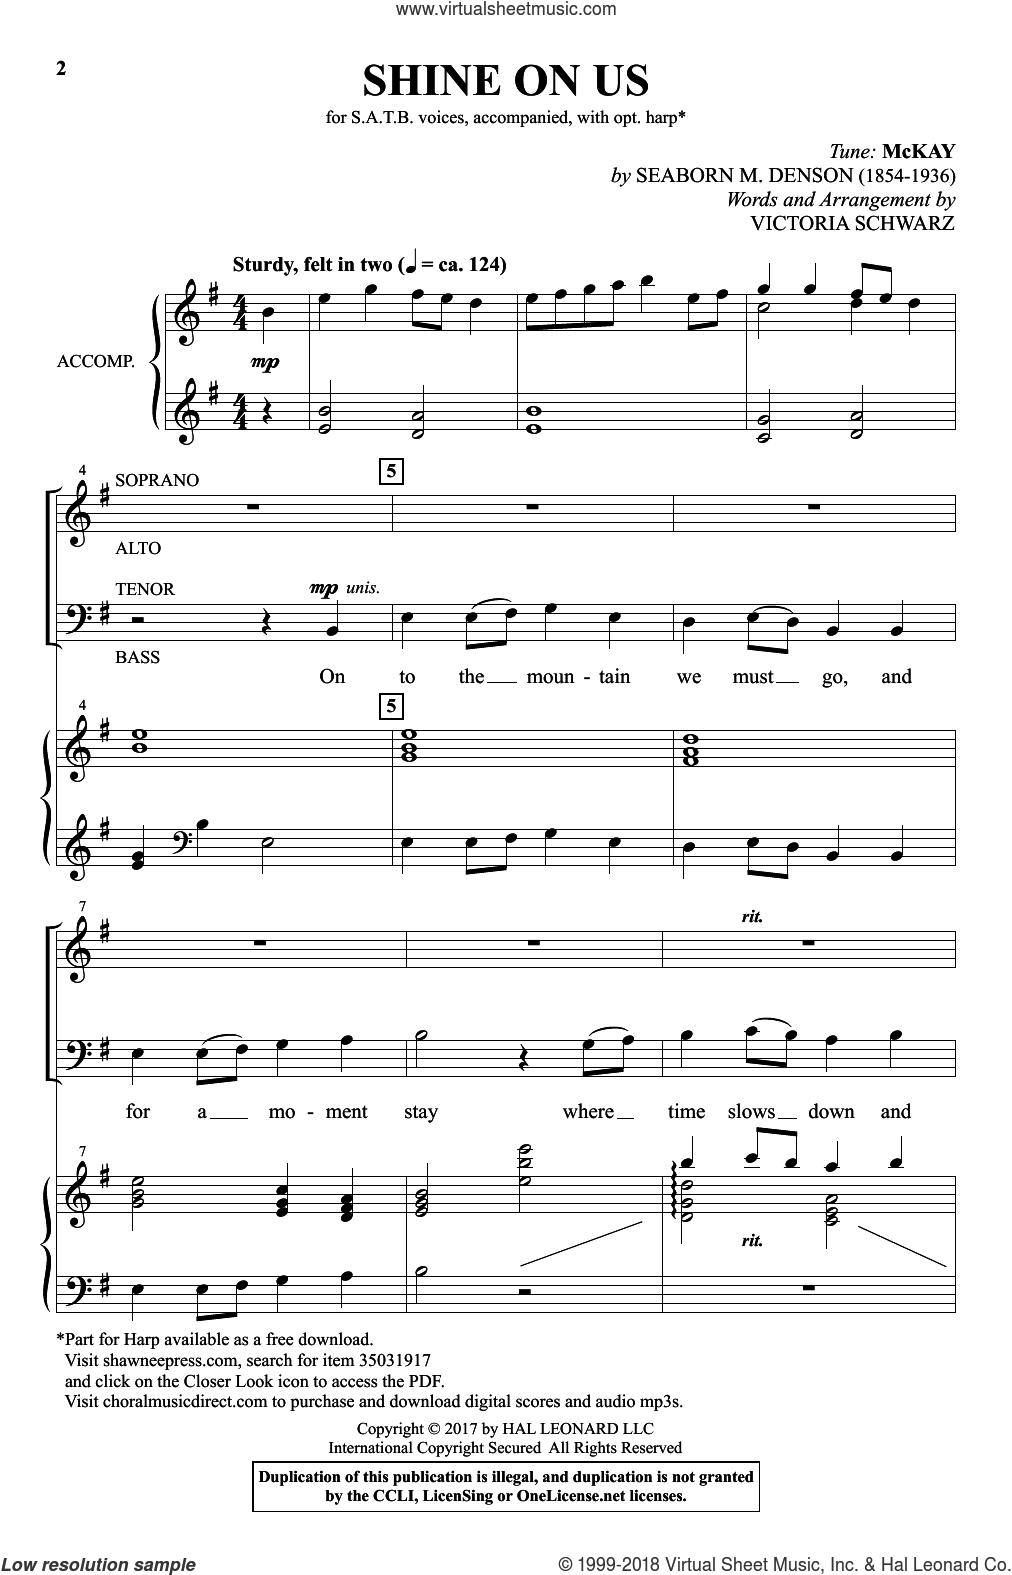 Shine On Us sheet music for choir by Victoria Schwarz, intermediate skill level